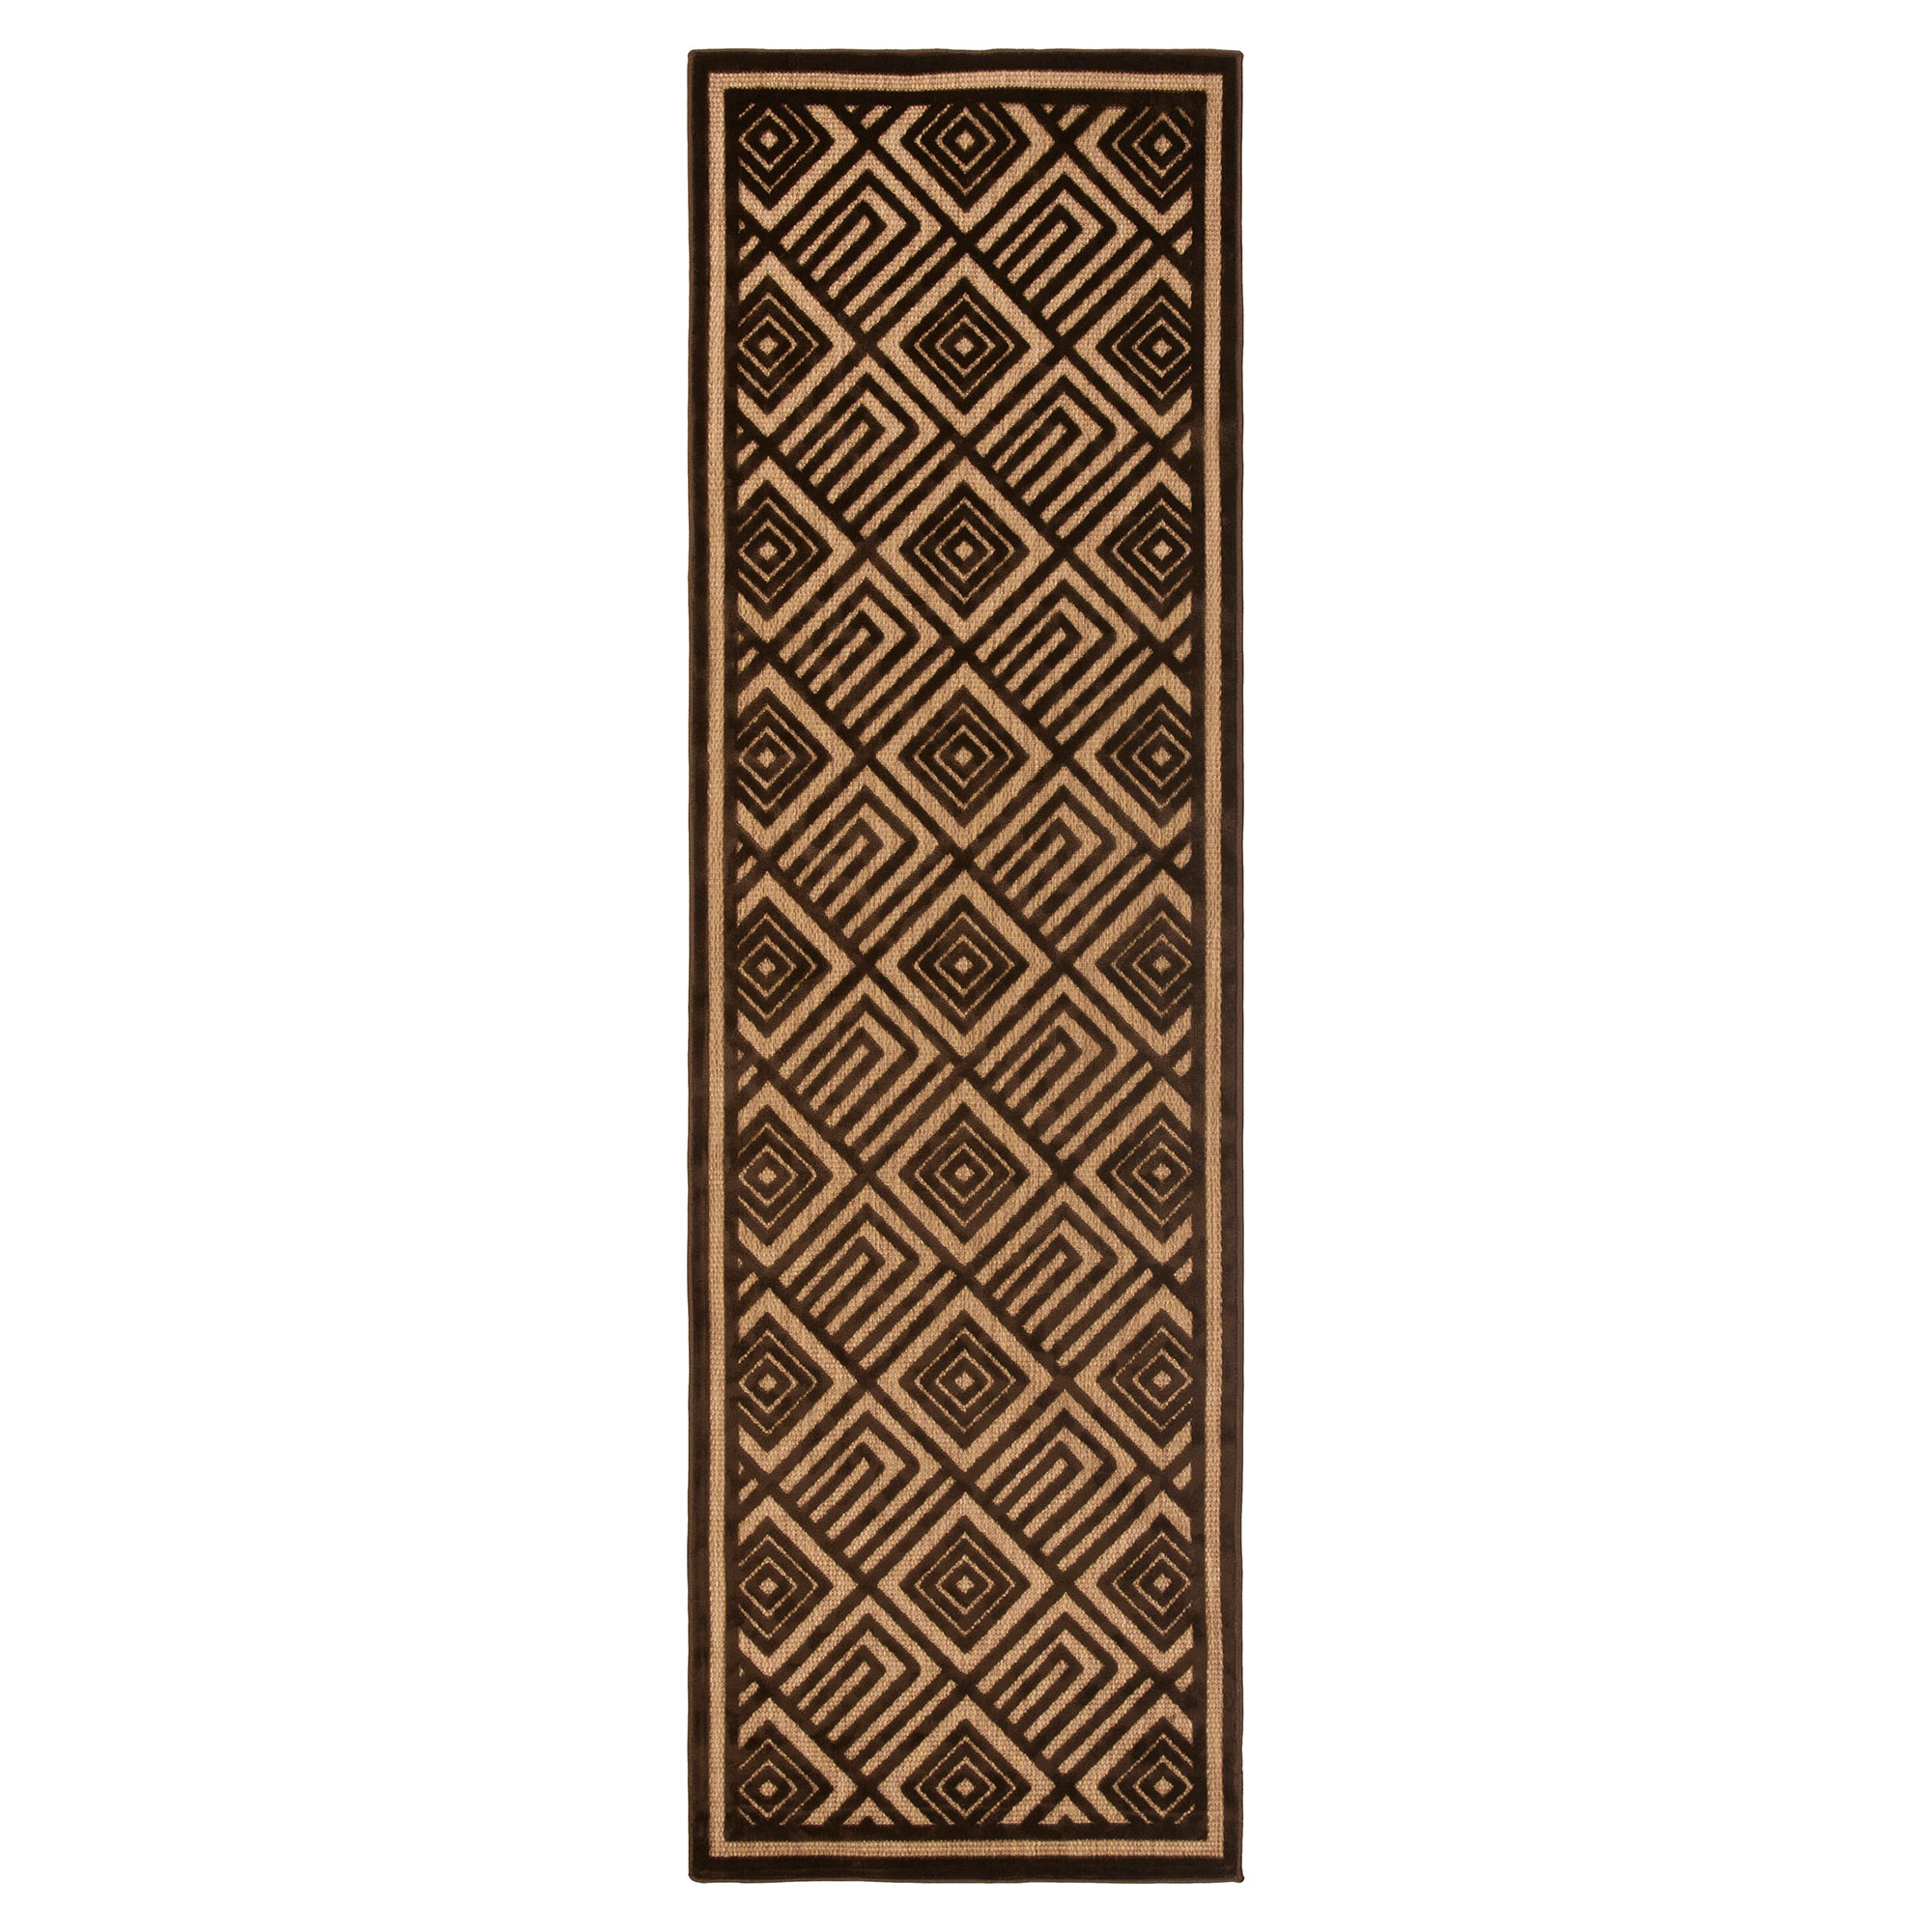 Anouk Global Dark Brown Geometric Outdoor Rug - 2'6 x 7'102'6x7'10